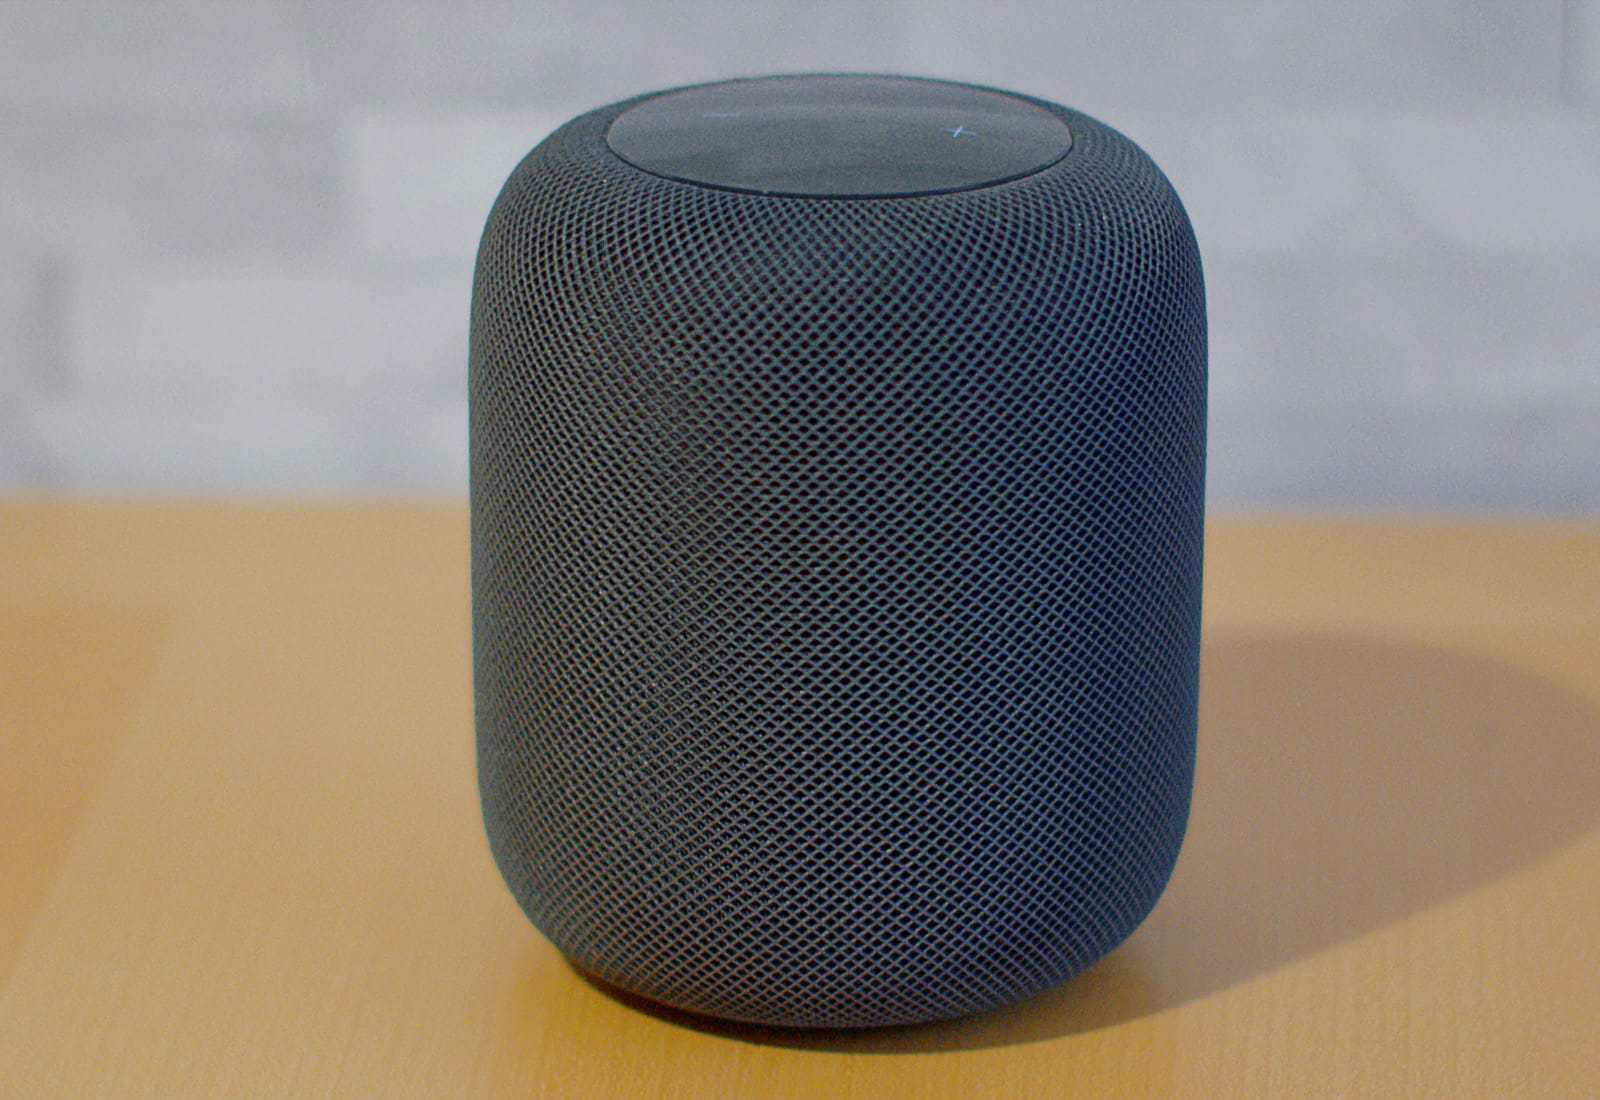 Don't take a chance on a bricked HomePod.